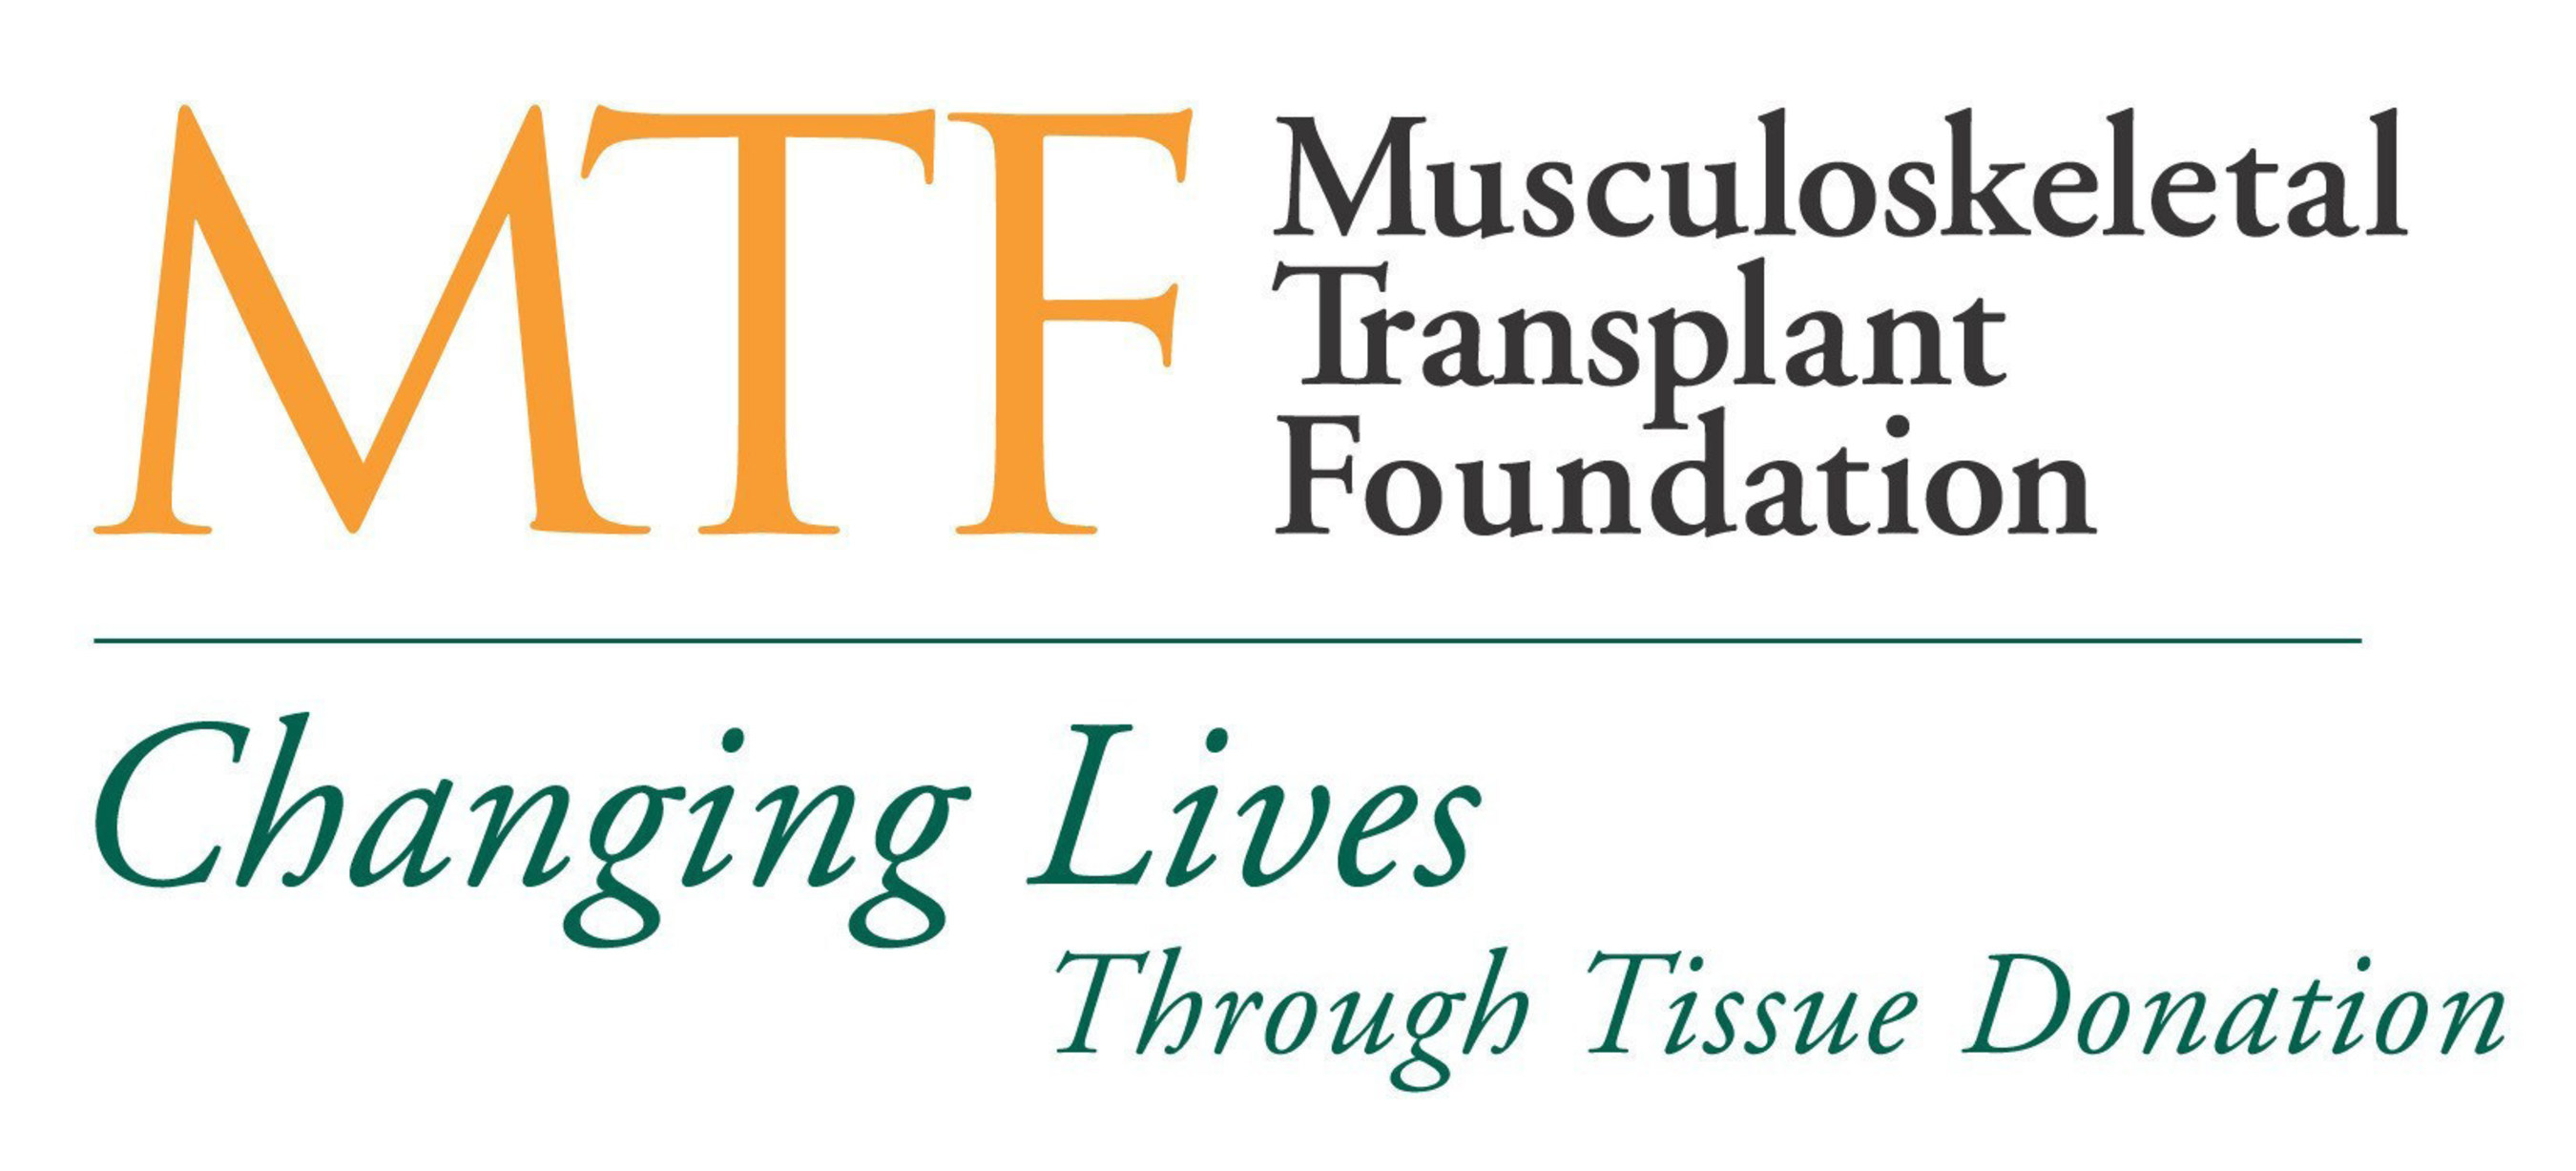 About MTF - The Musculoskeletal Transplant Foundation, a non-profit organization based in Edison, NJ, is a ...